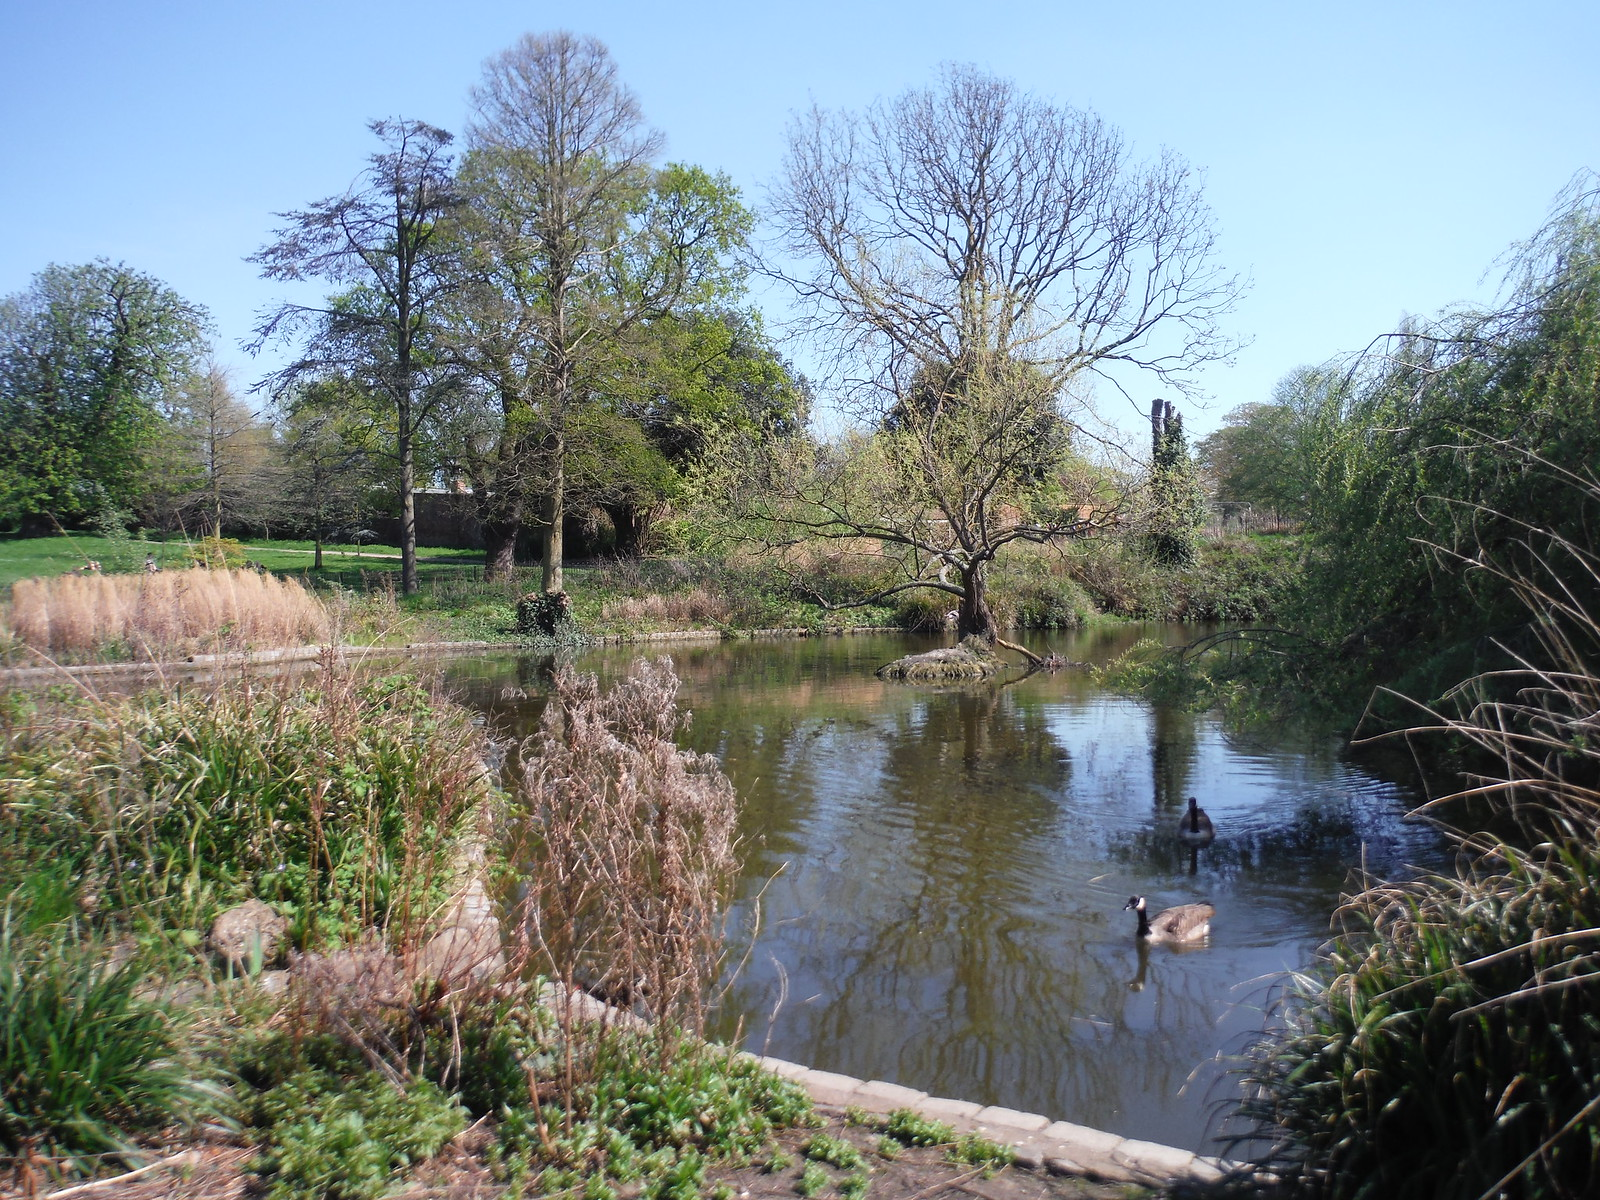 Pond 2 fed by Effra Tributary, Brockwell Park SWC Short Walk 39 - Brockwell Park (Herne Hill Circular or to Brixton)